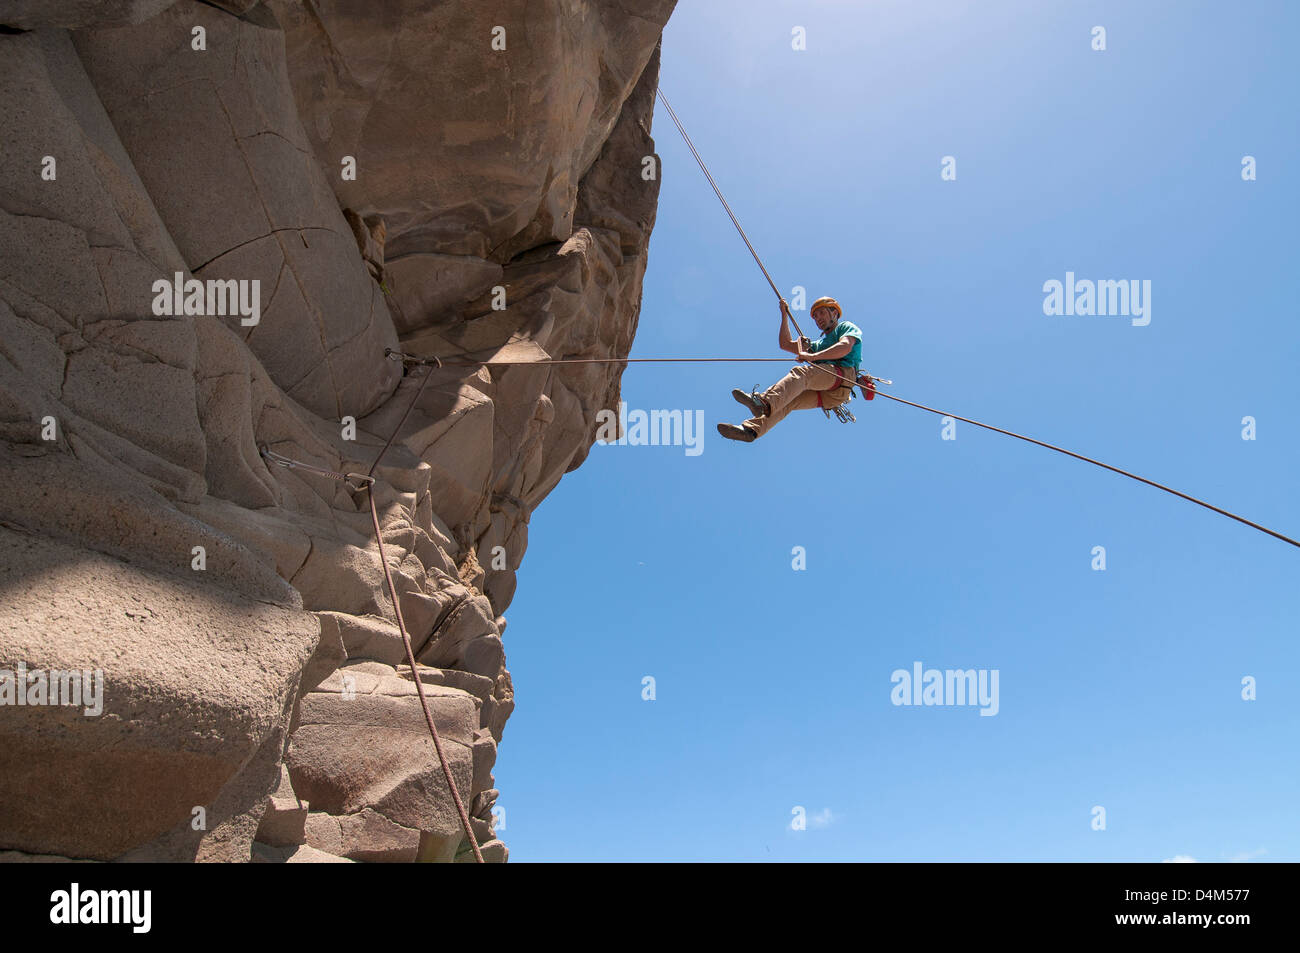 Rock climber abseiling jagged cliff - Stock Image